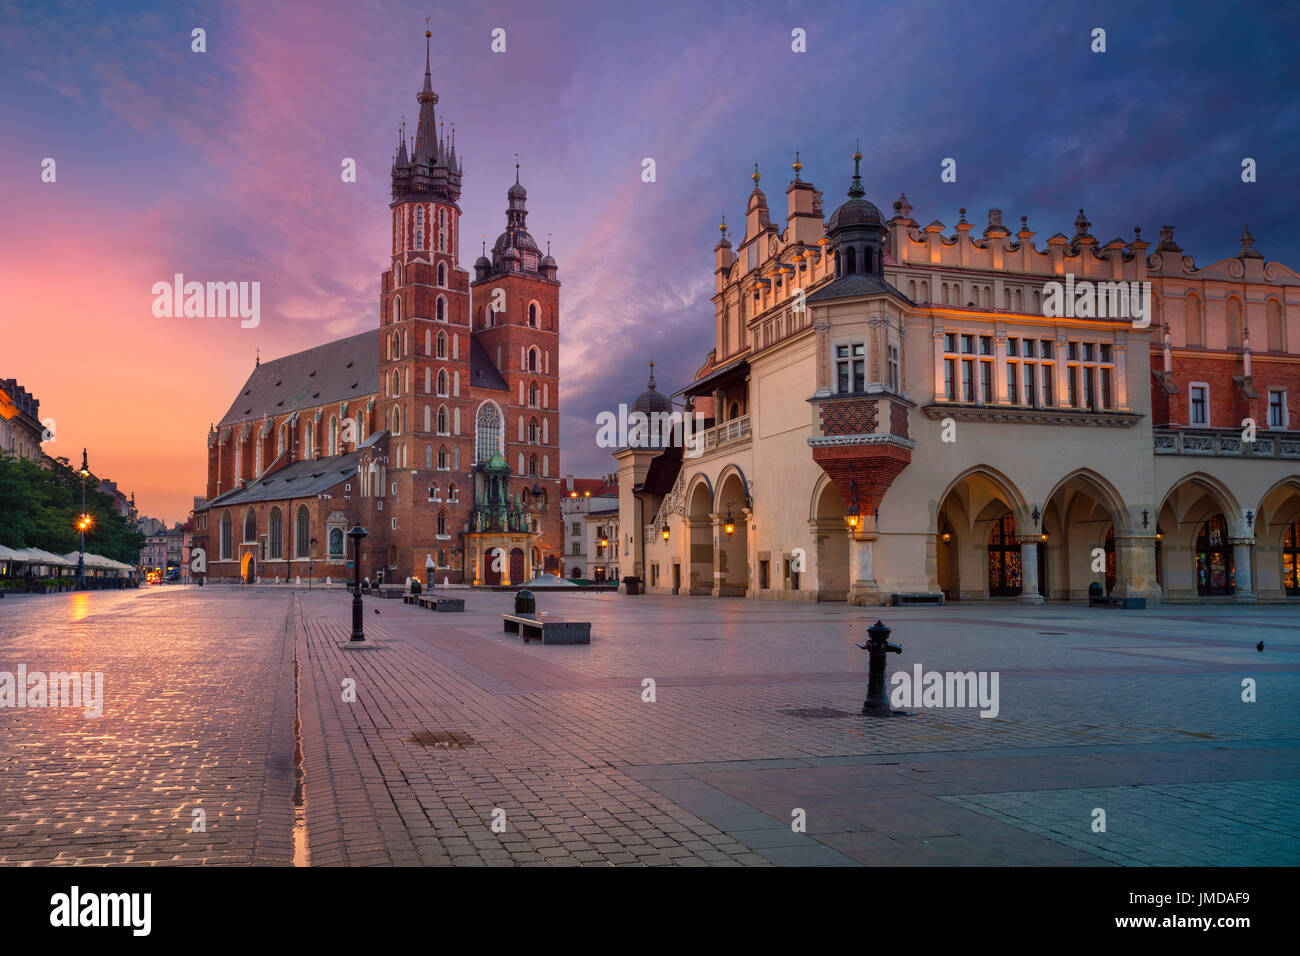 Krakow. Image of old town Krakow, Poland during sunrise. Stock Photo